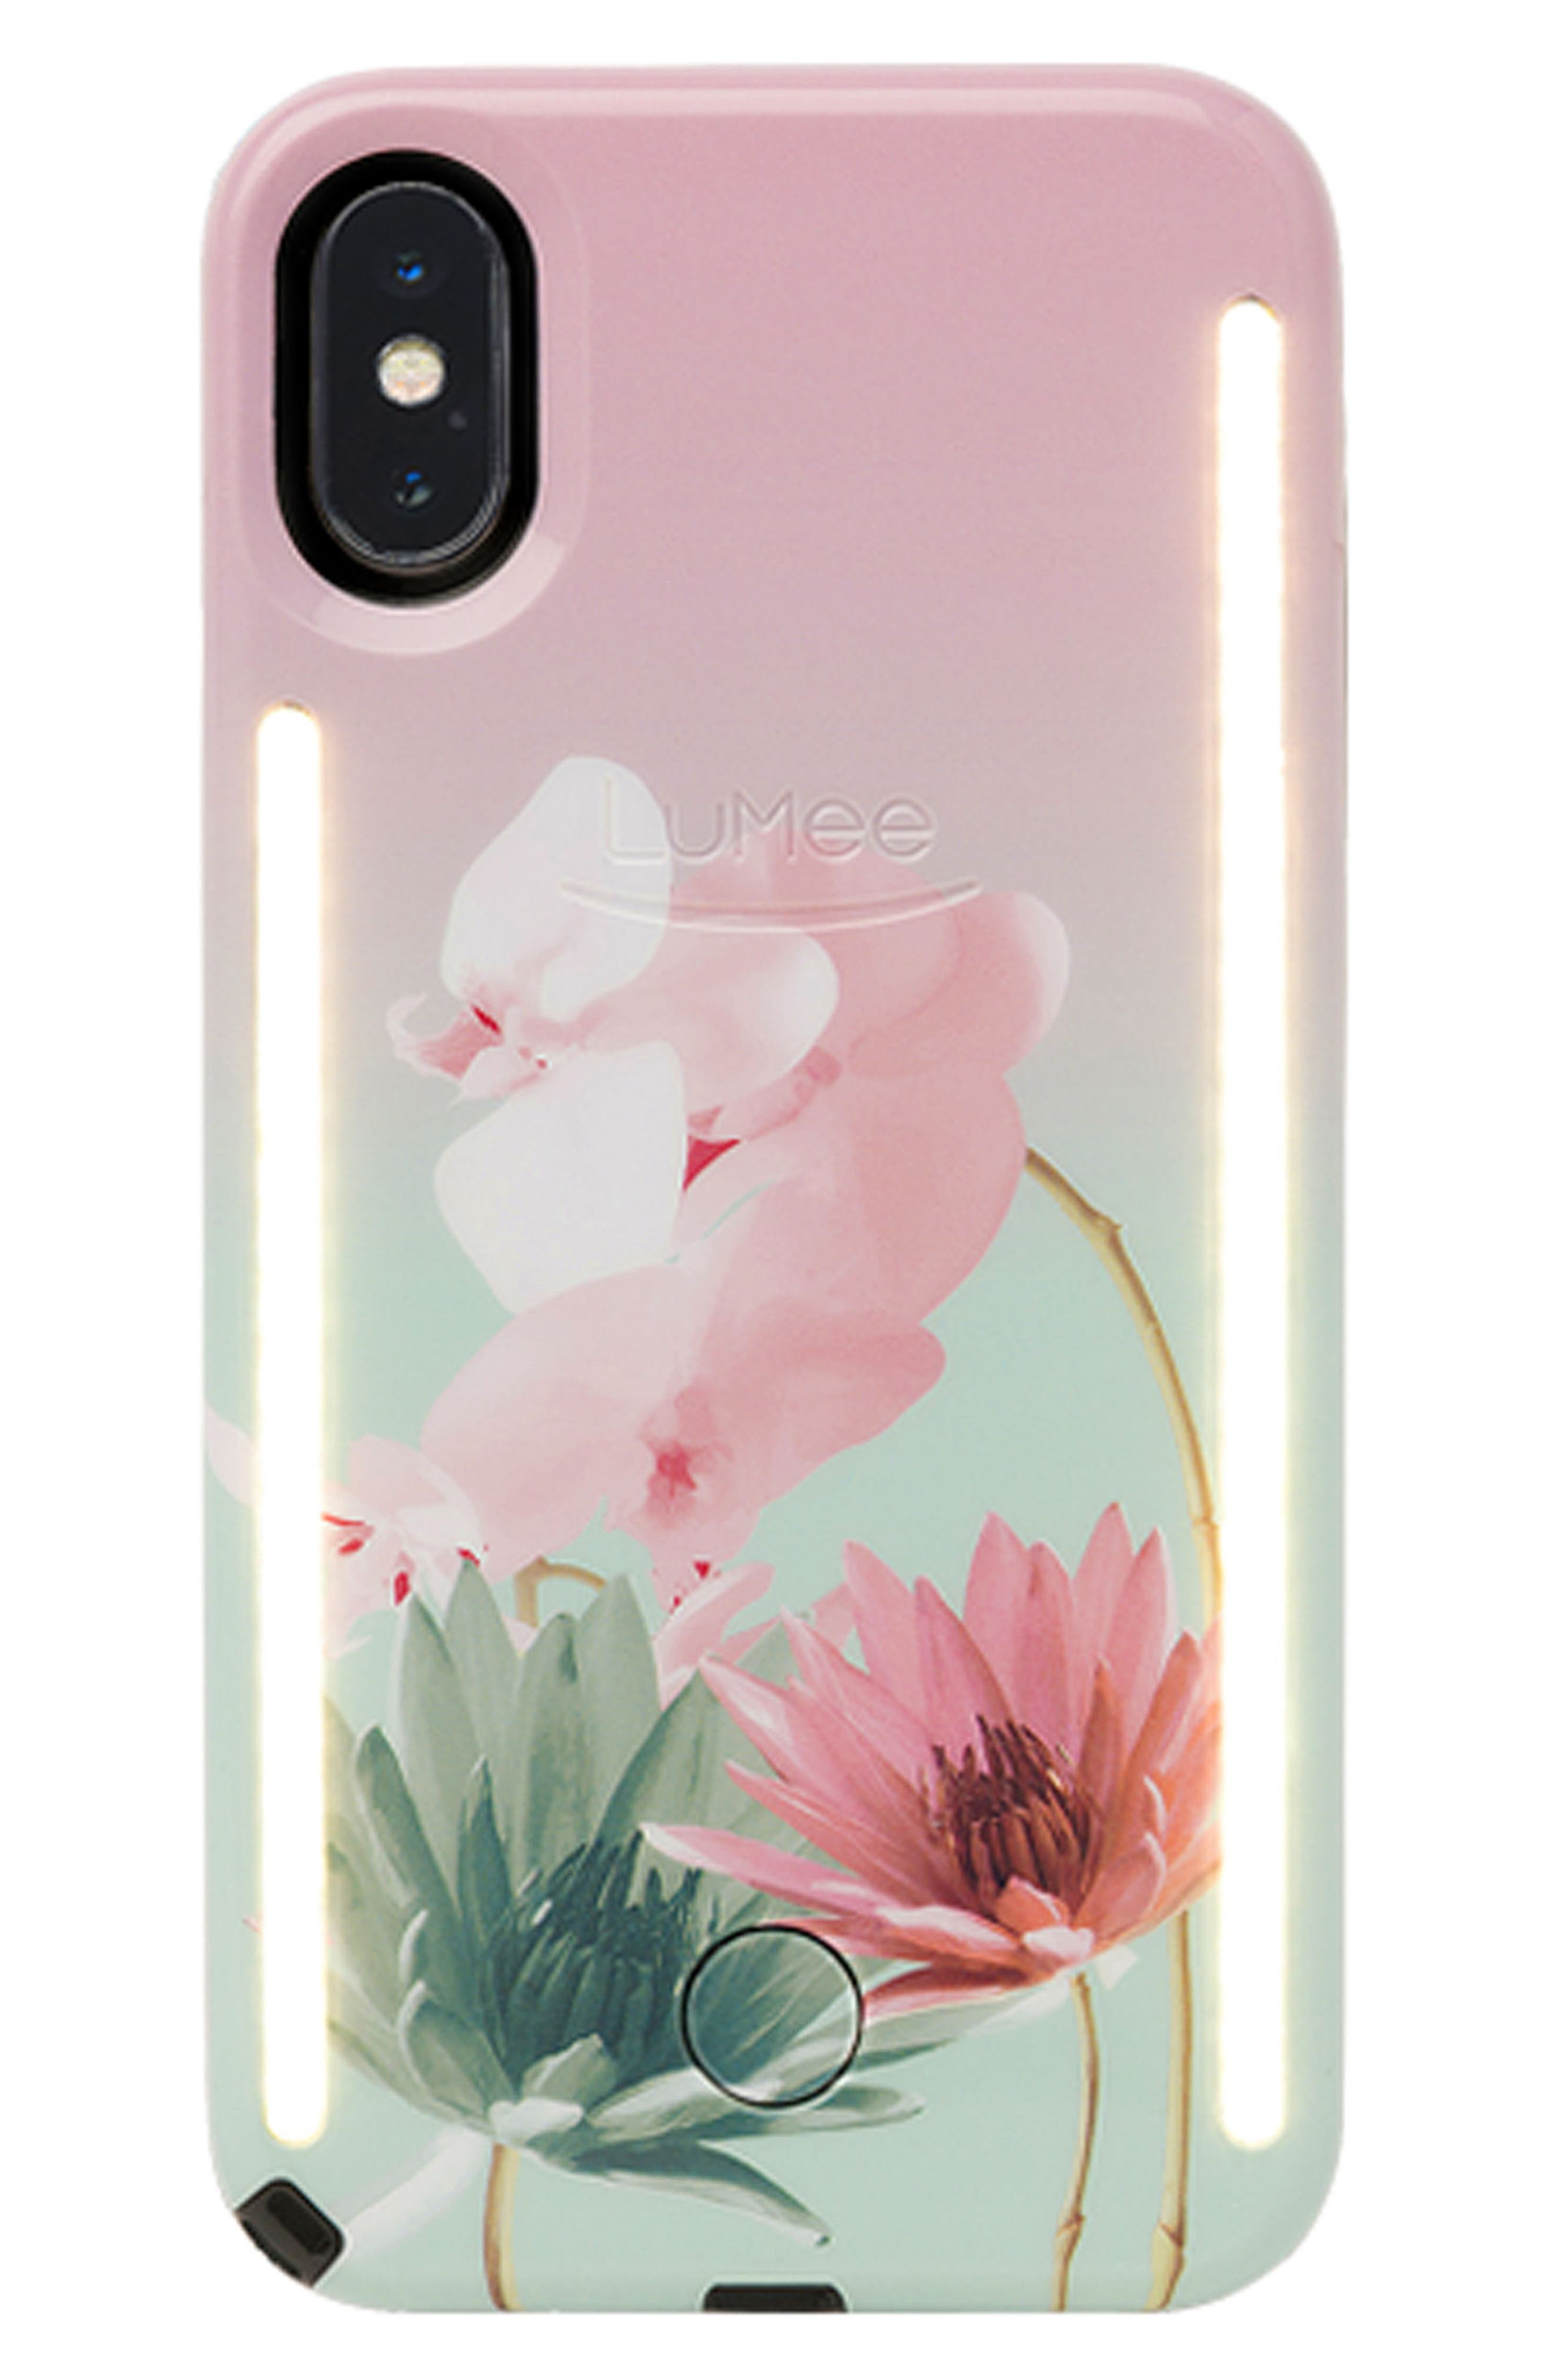 Duo LED Lighted iPhone X Case,                             Main thumbnail 1, color,                             Desert Flower